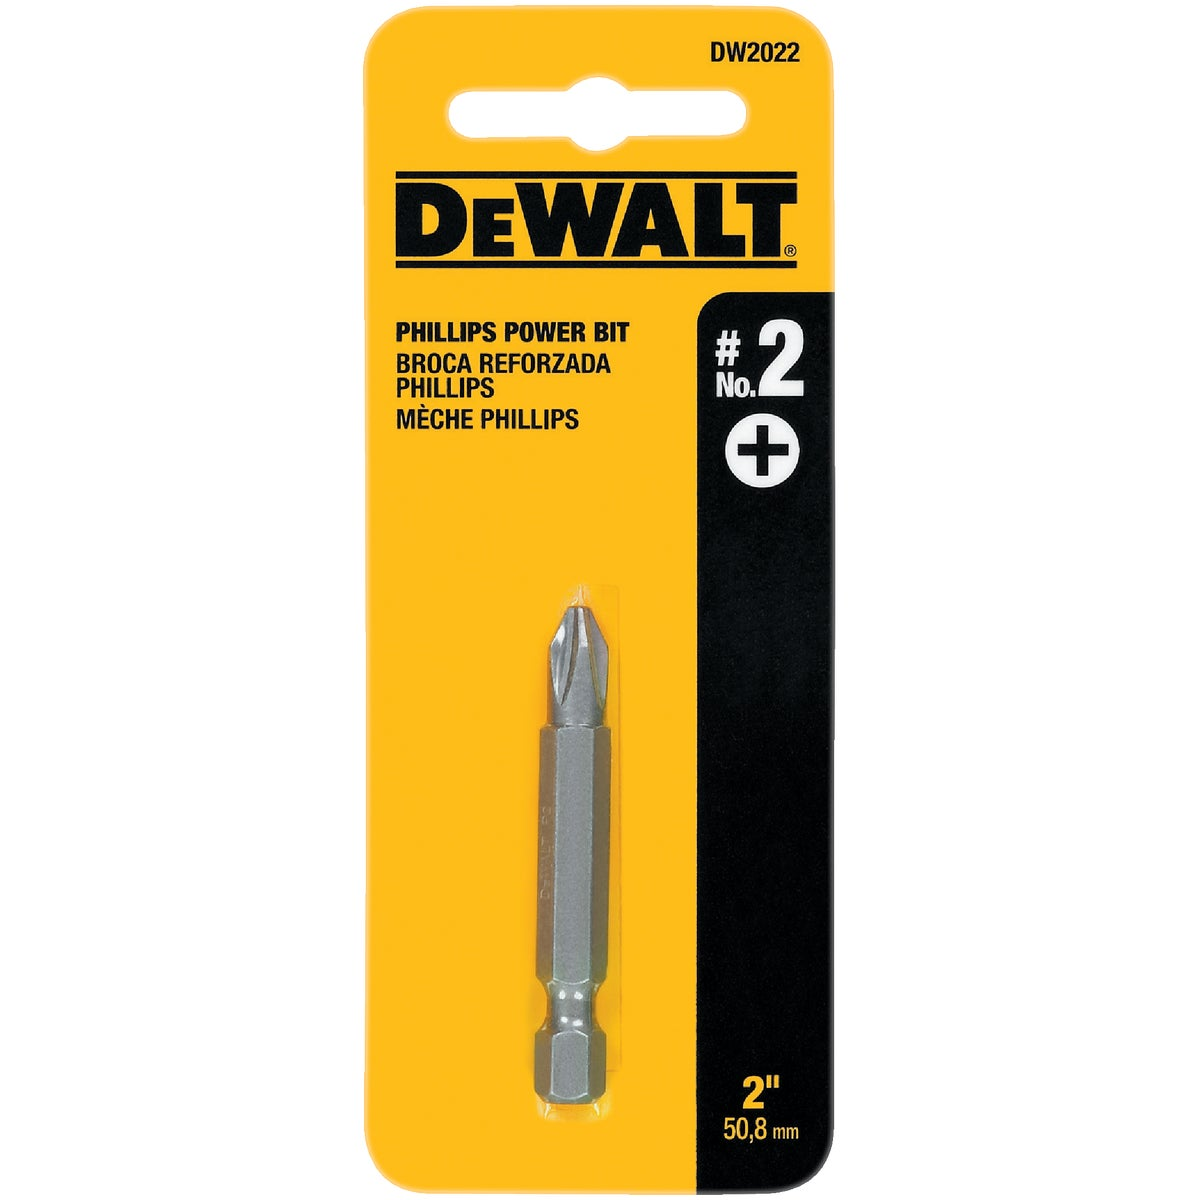 "#2 2"" PHIL POWER BIT - DW2022 by DeWalt"